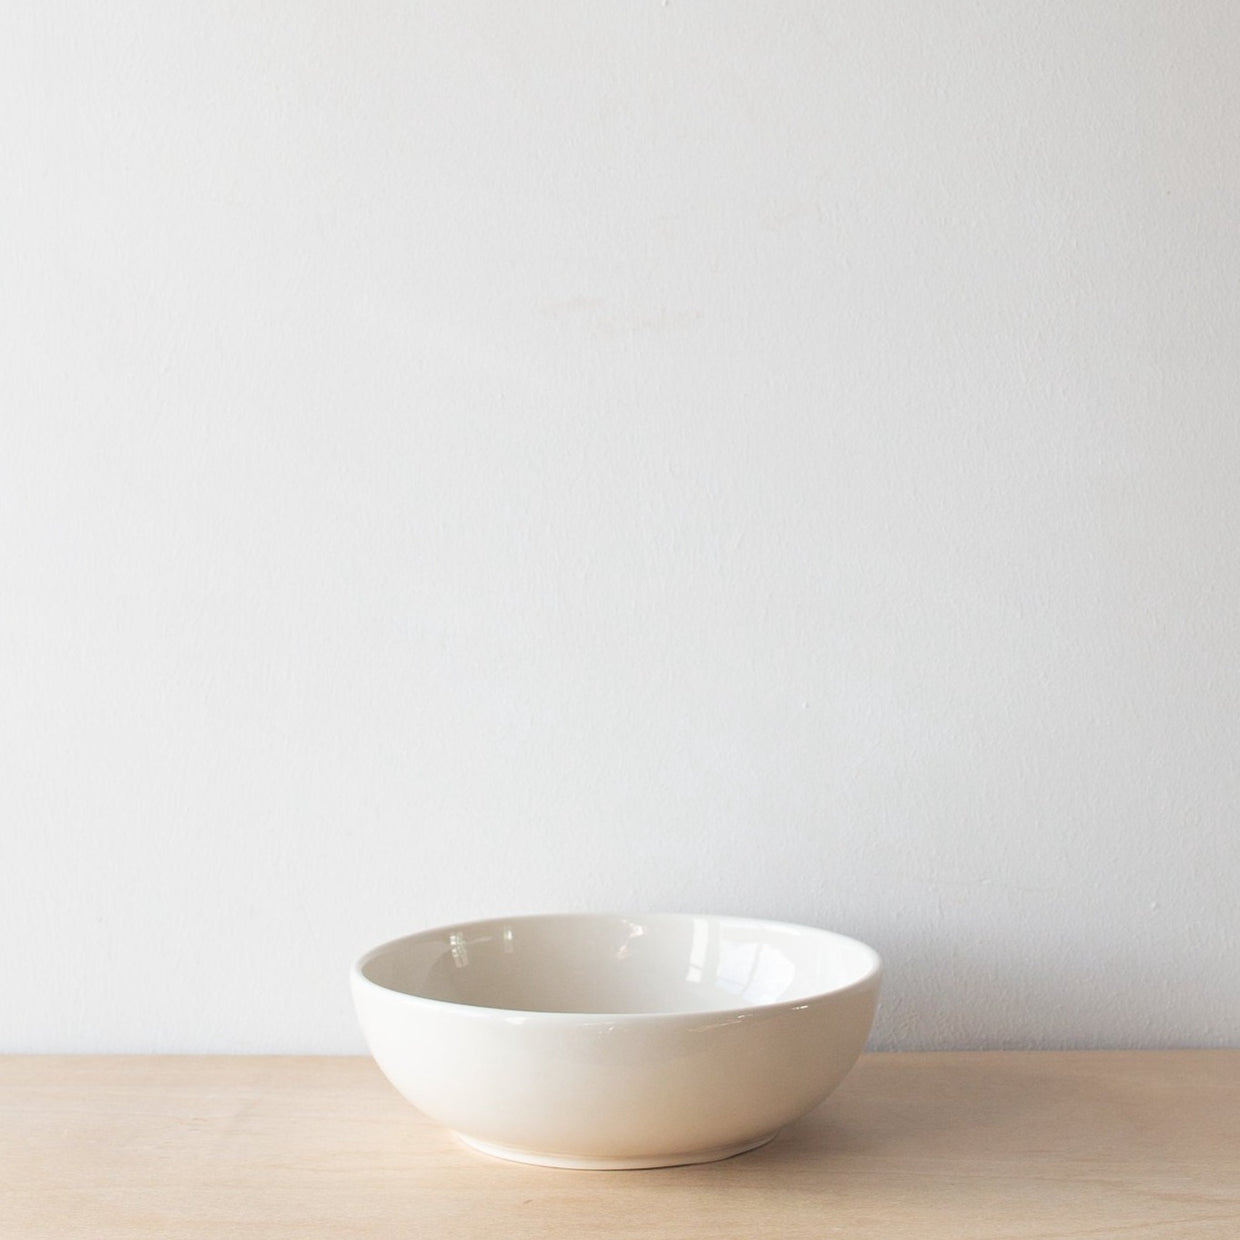 Pottery Series Bowl